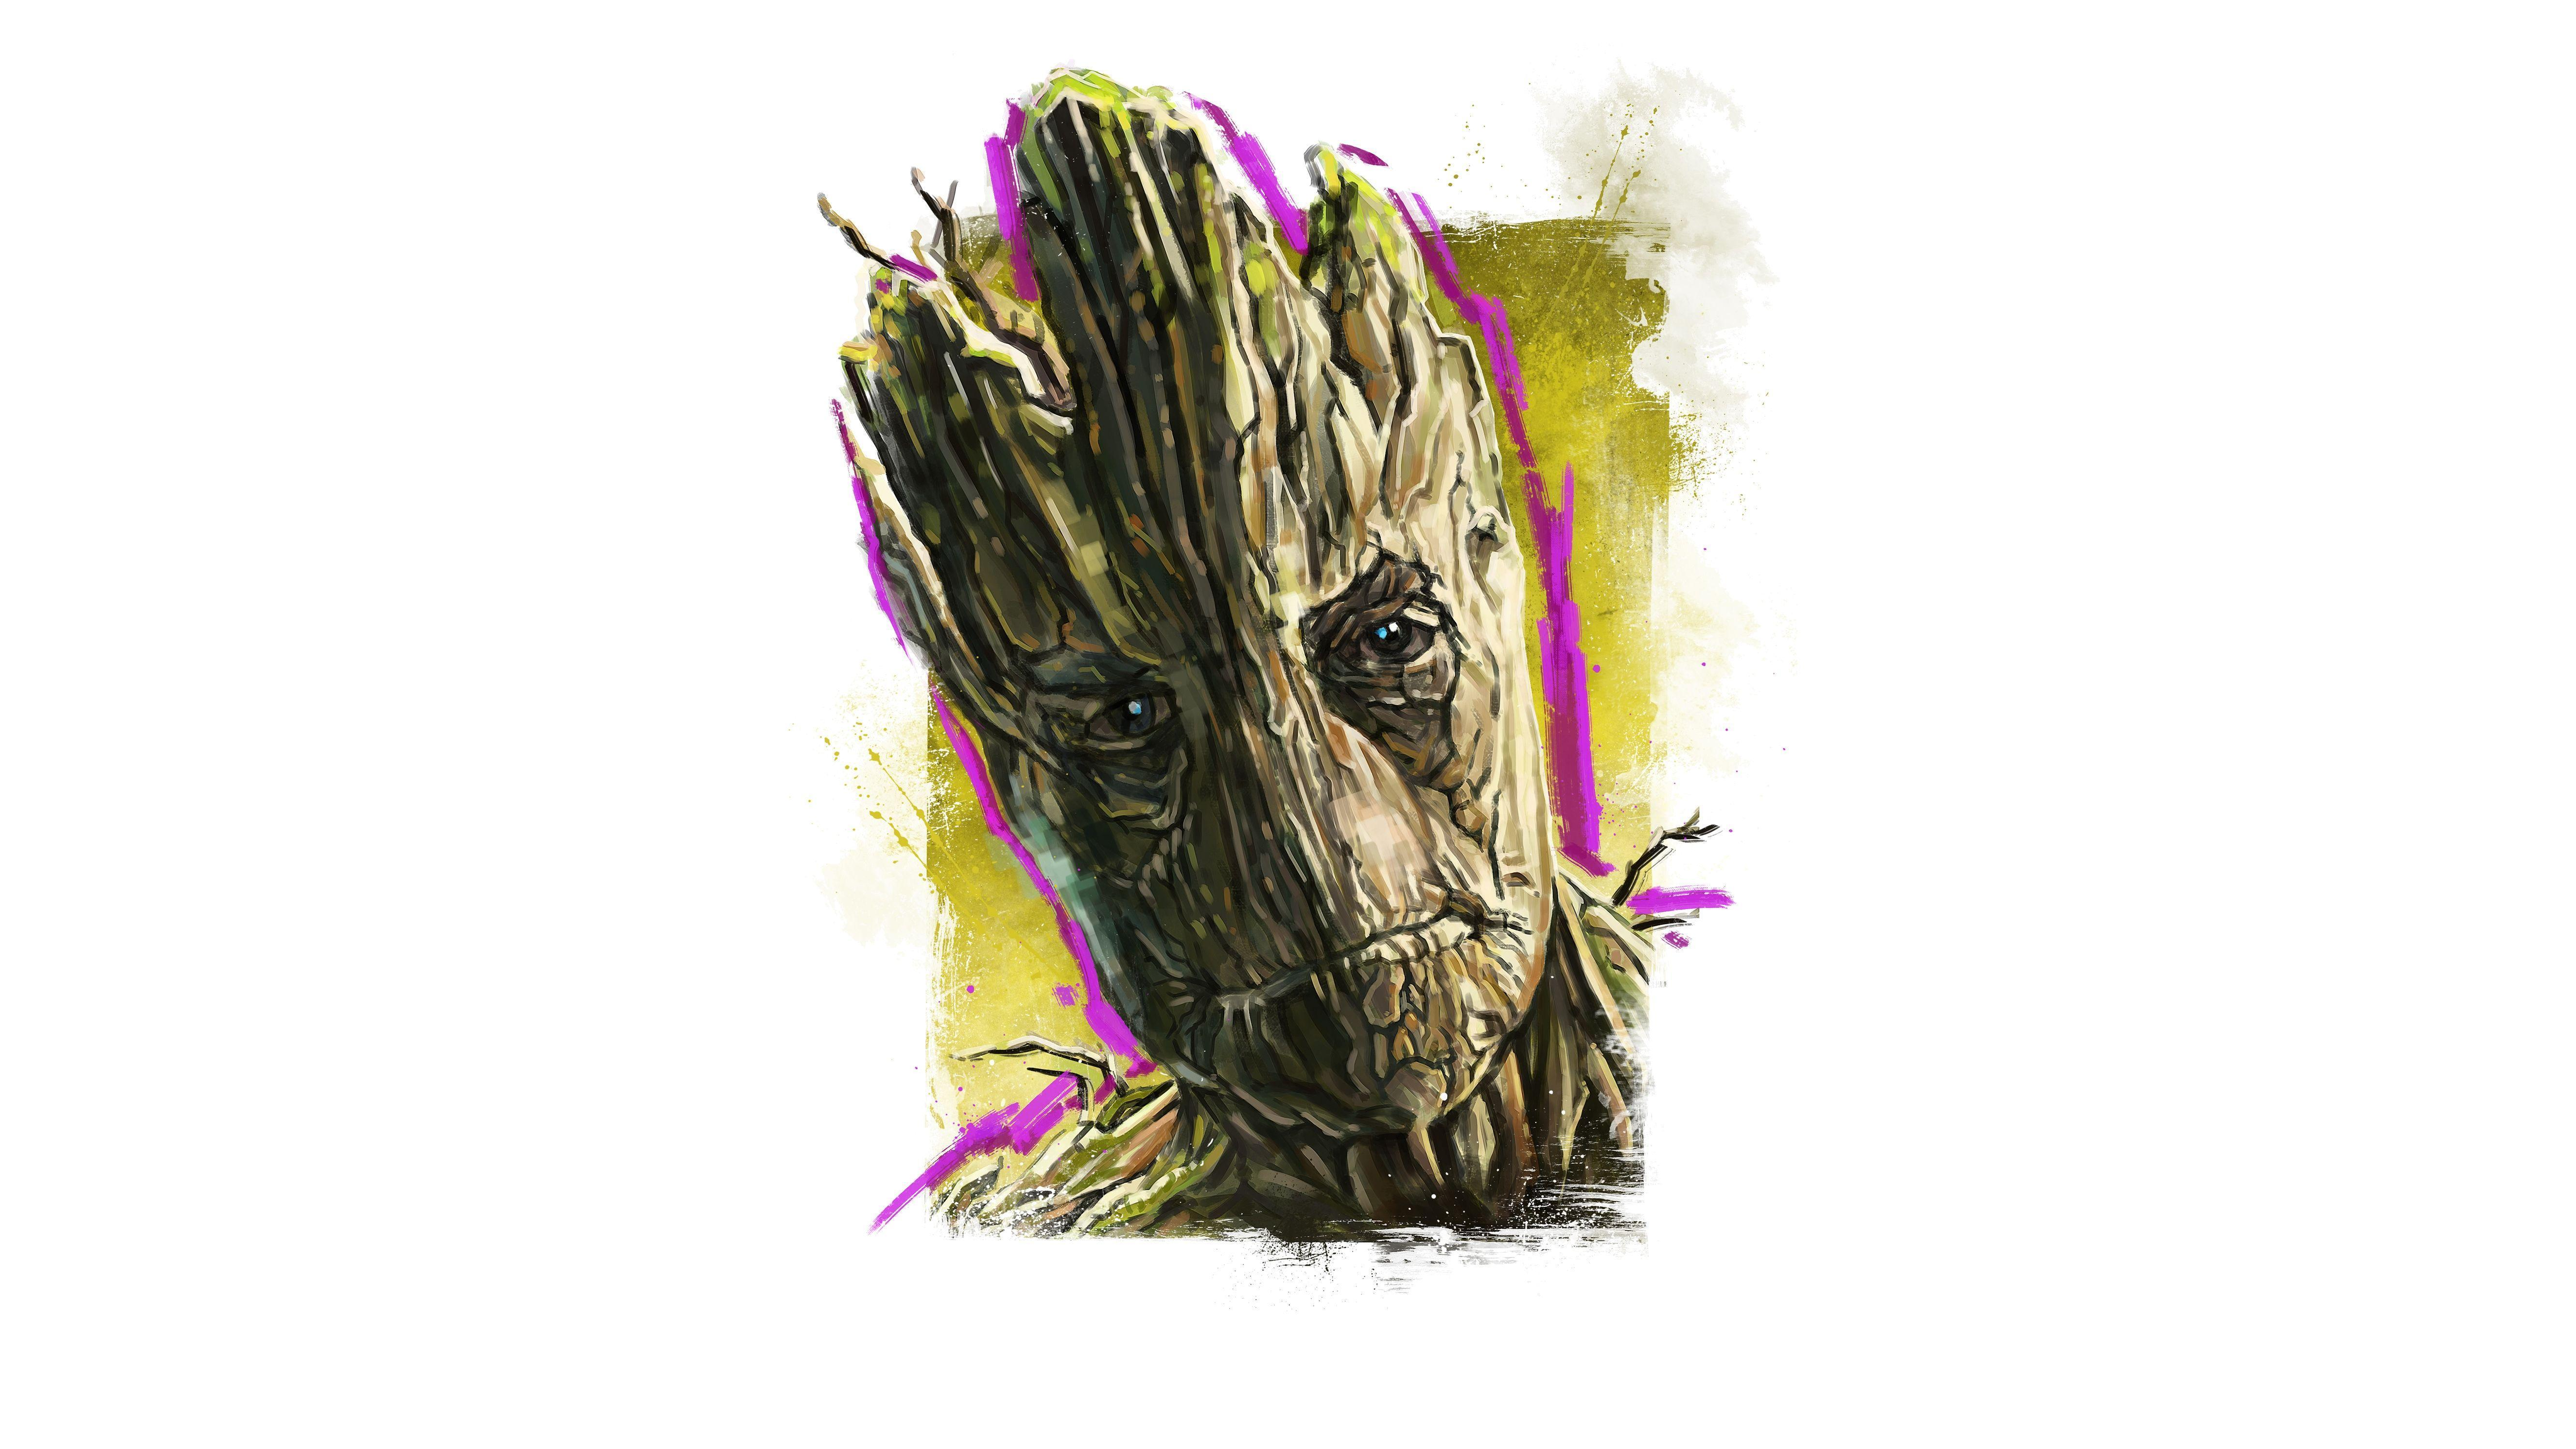 Groot Computer Wallpapers, Desktop Backgrounds | 5300x2981 | ID:515498